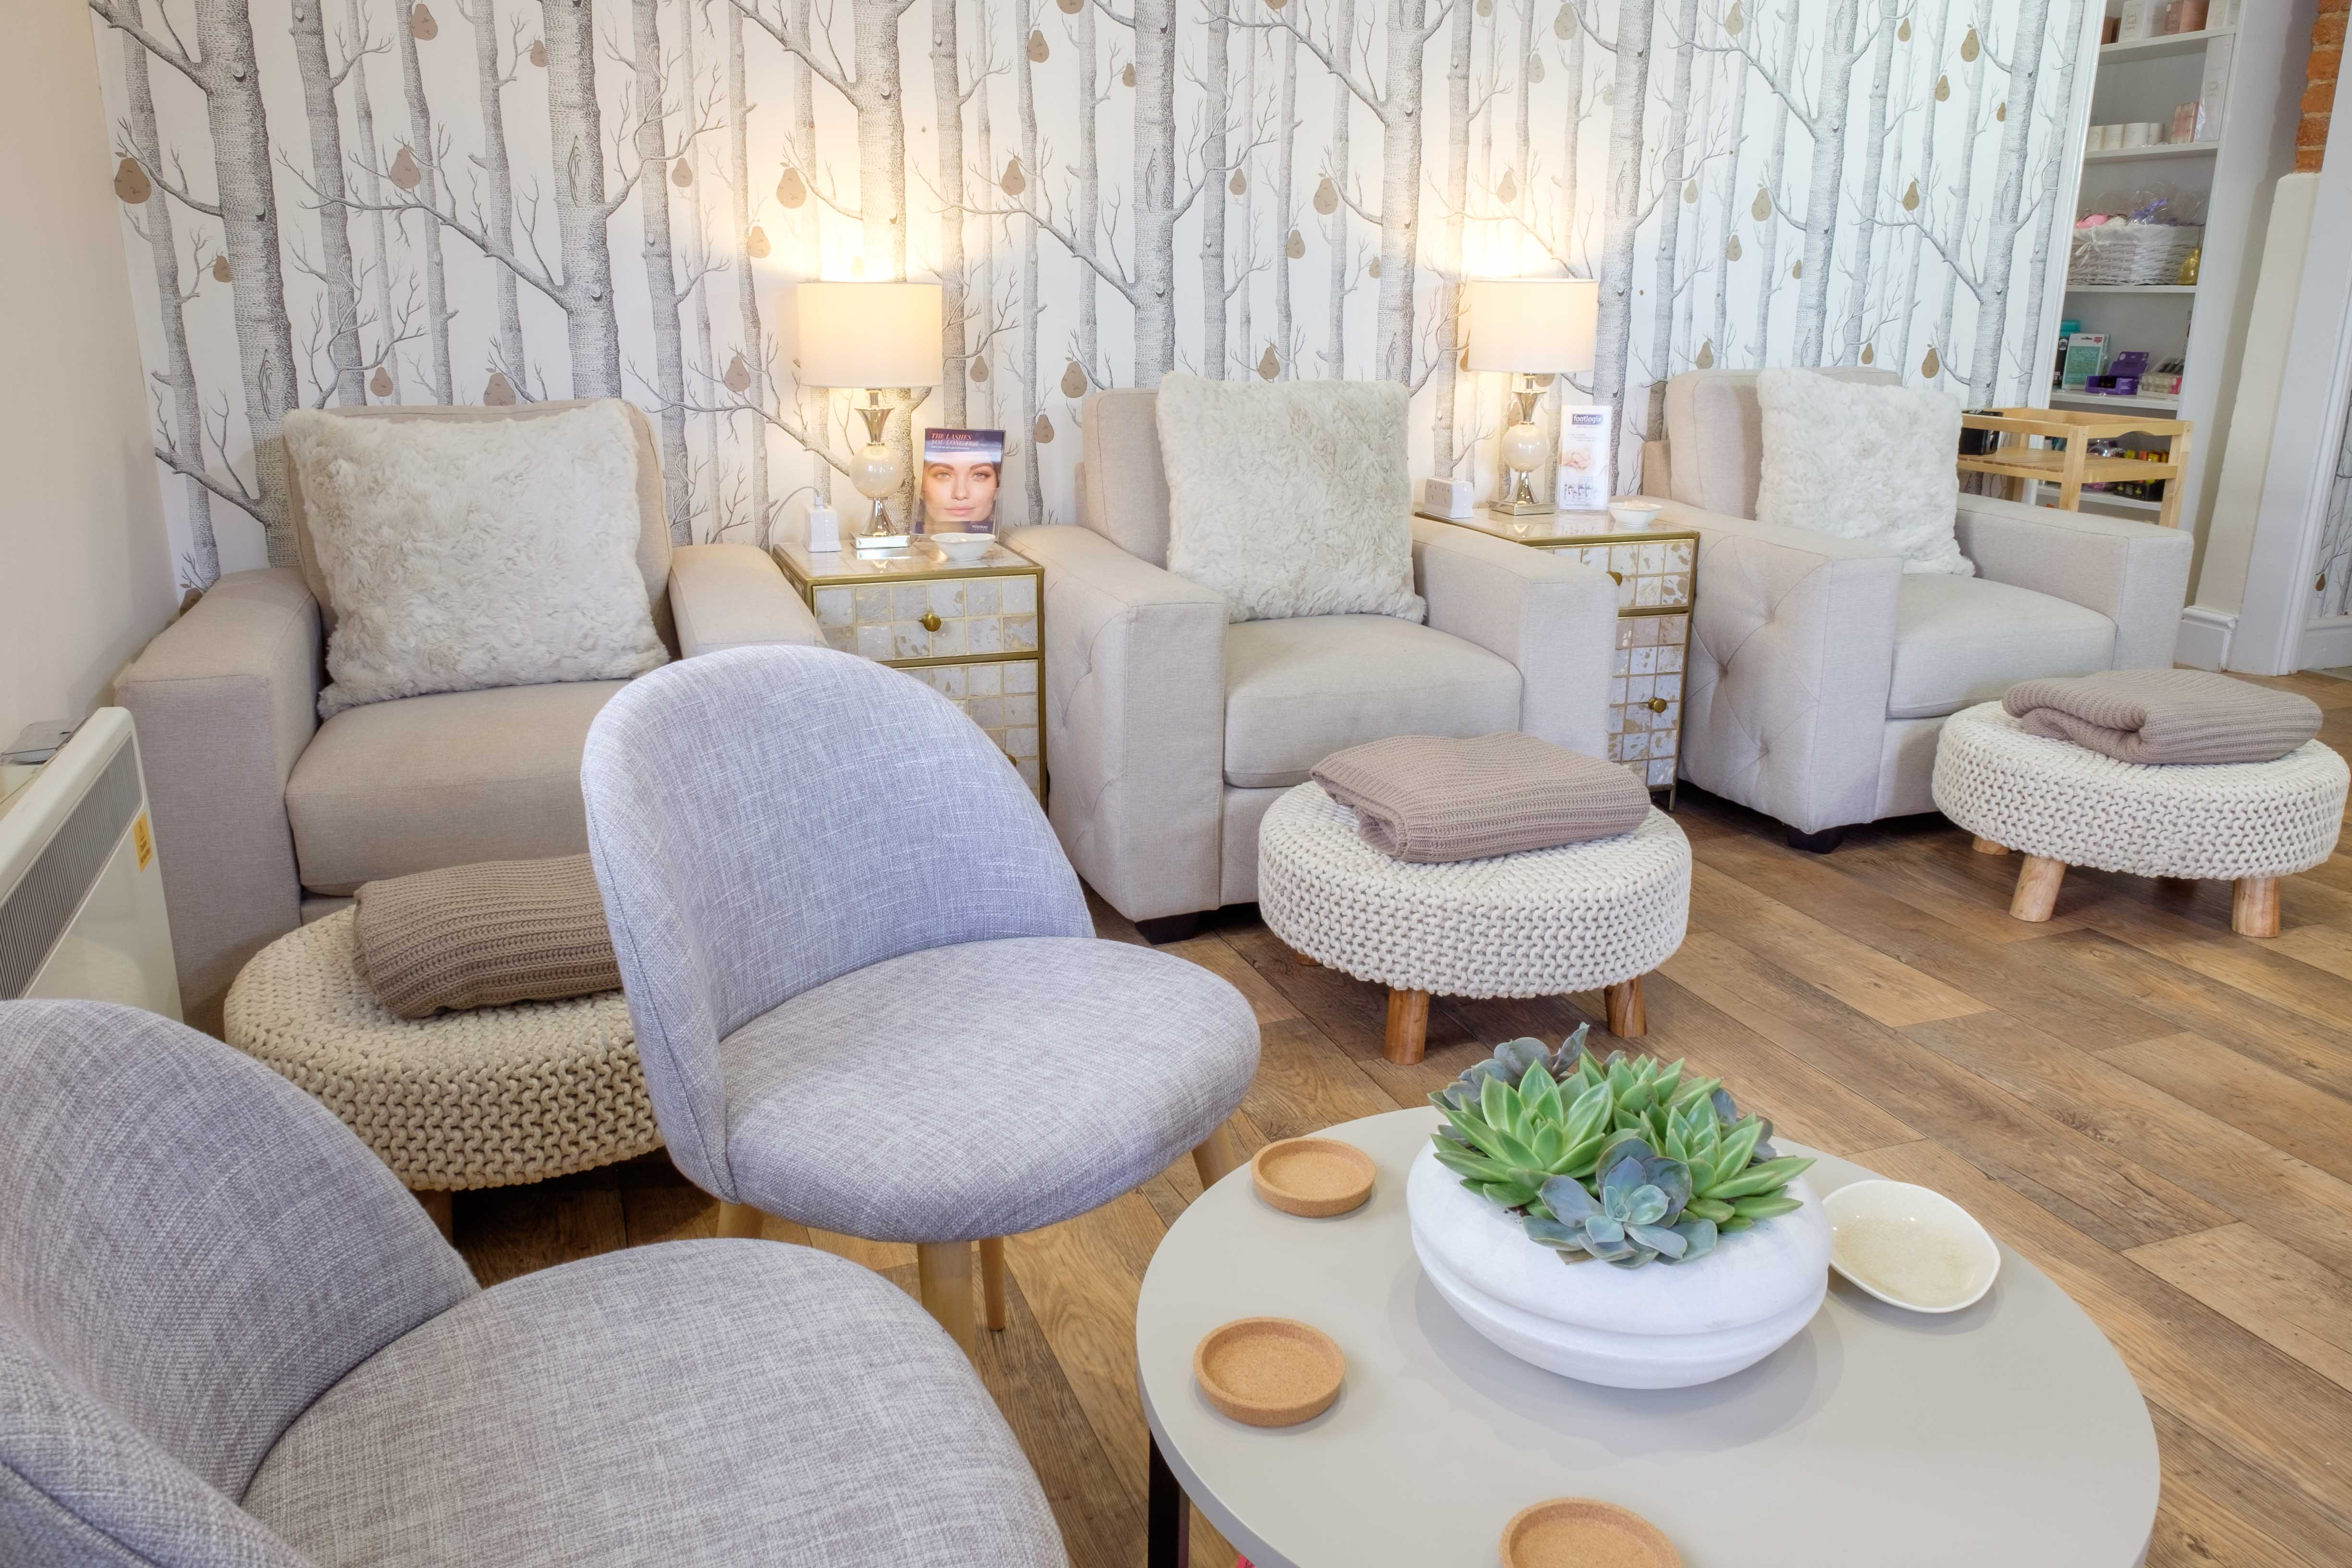 The Relaxing Pedicure Chairs at Revive Beauty Lamport Manor